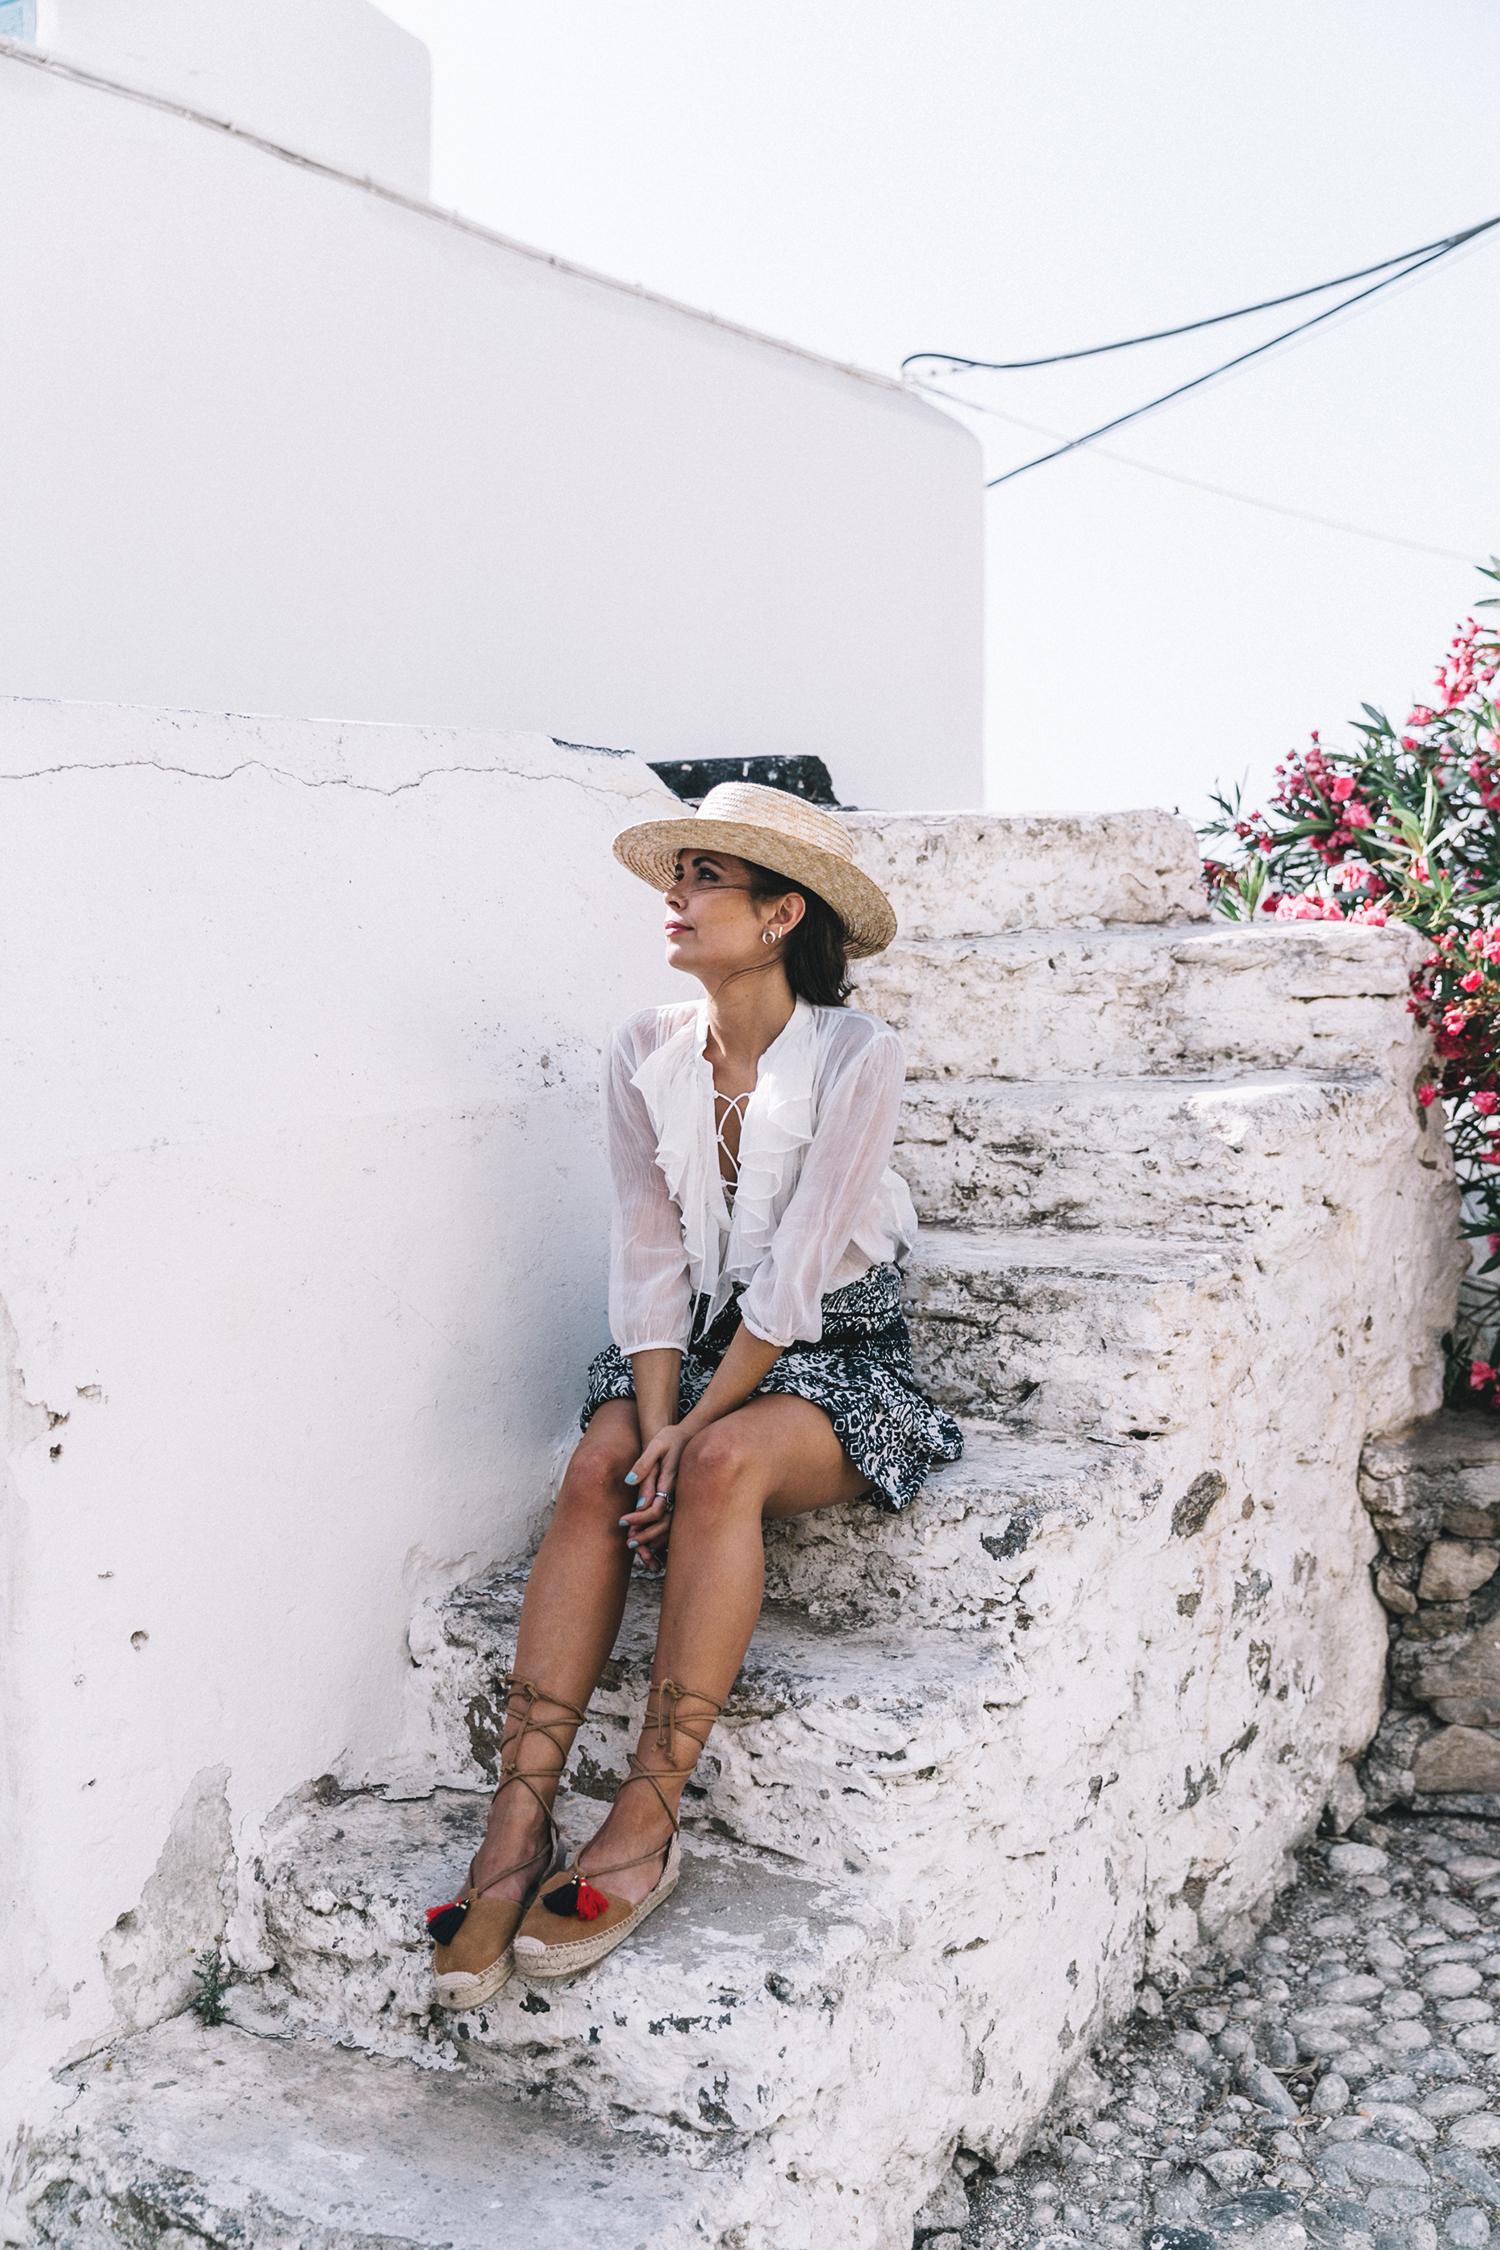 Lace_up_Blouse-Ralph_Lauren-Soludos_Espadrilles-Soludos_Escapes-Skirt-Straw_Hat-Canotier-Lack_Of_Color-Street_Style-Mykonos-Greece-Collage_Vintage-2